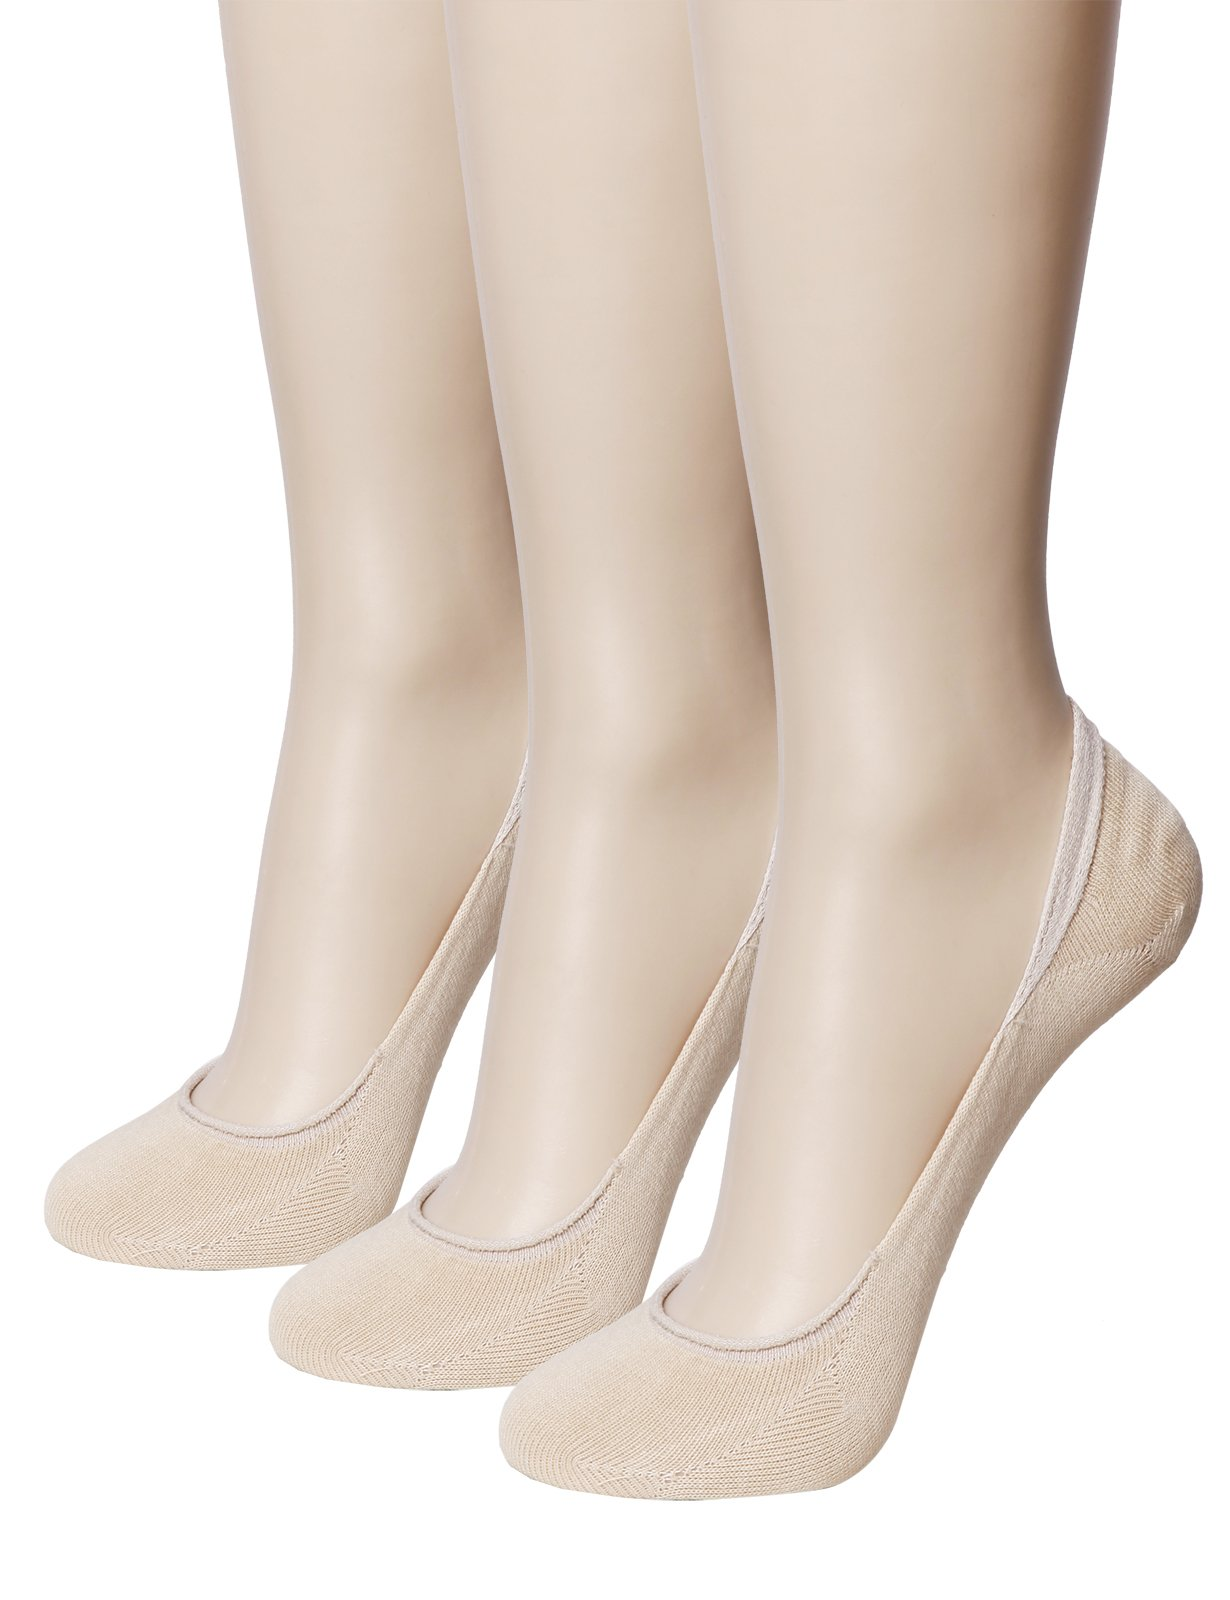 OASABASA Womens TRULY No Show Socks - Ultra Low Cut Socks Flat Socks Beige (SET3KWMS0403)